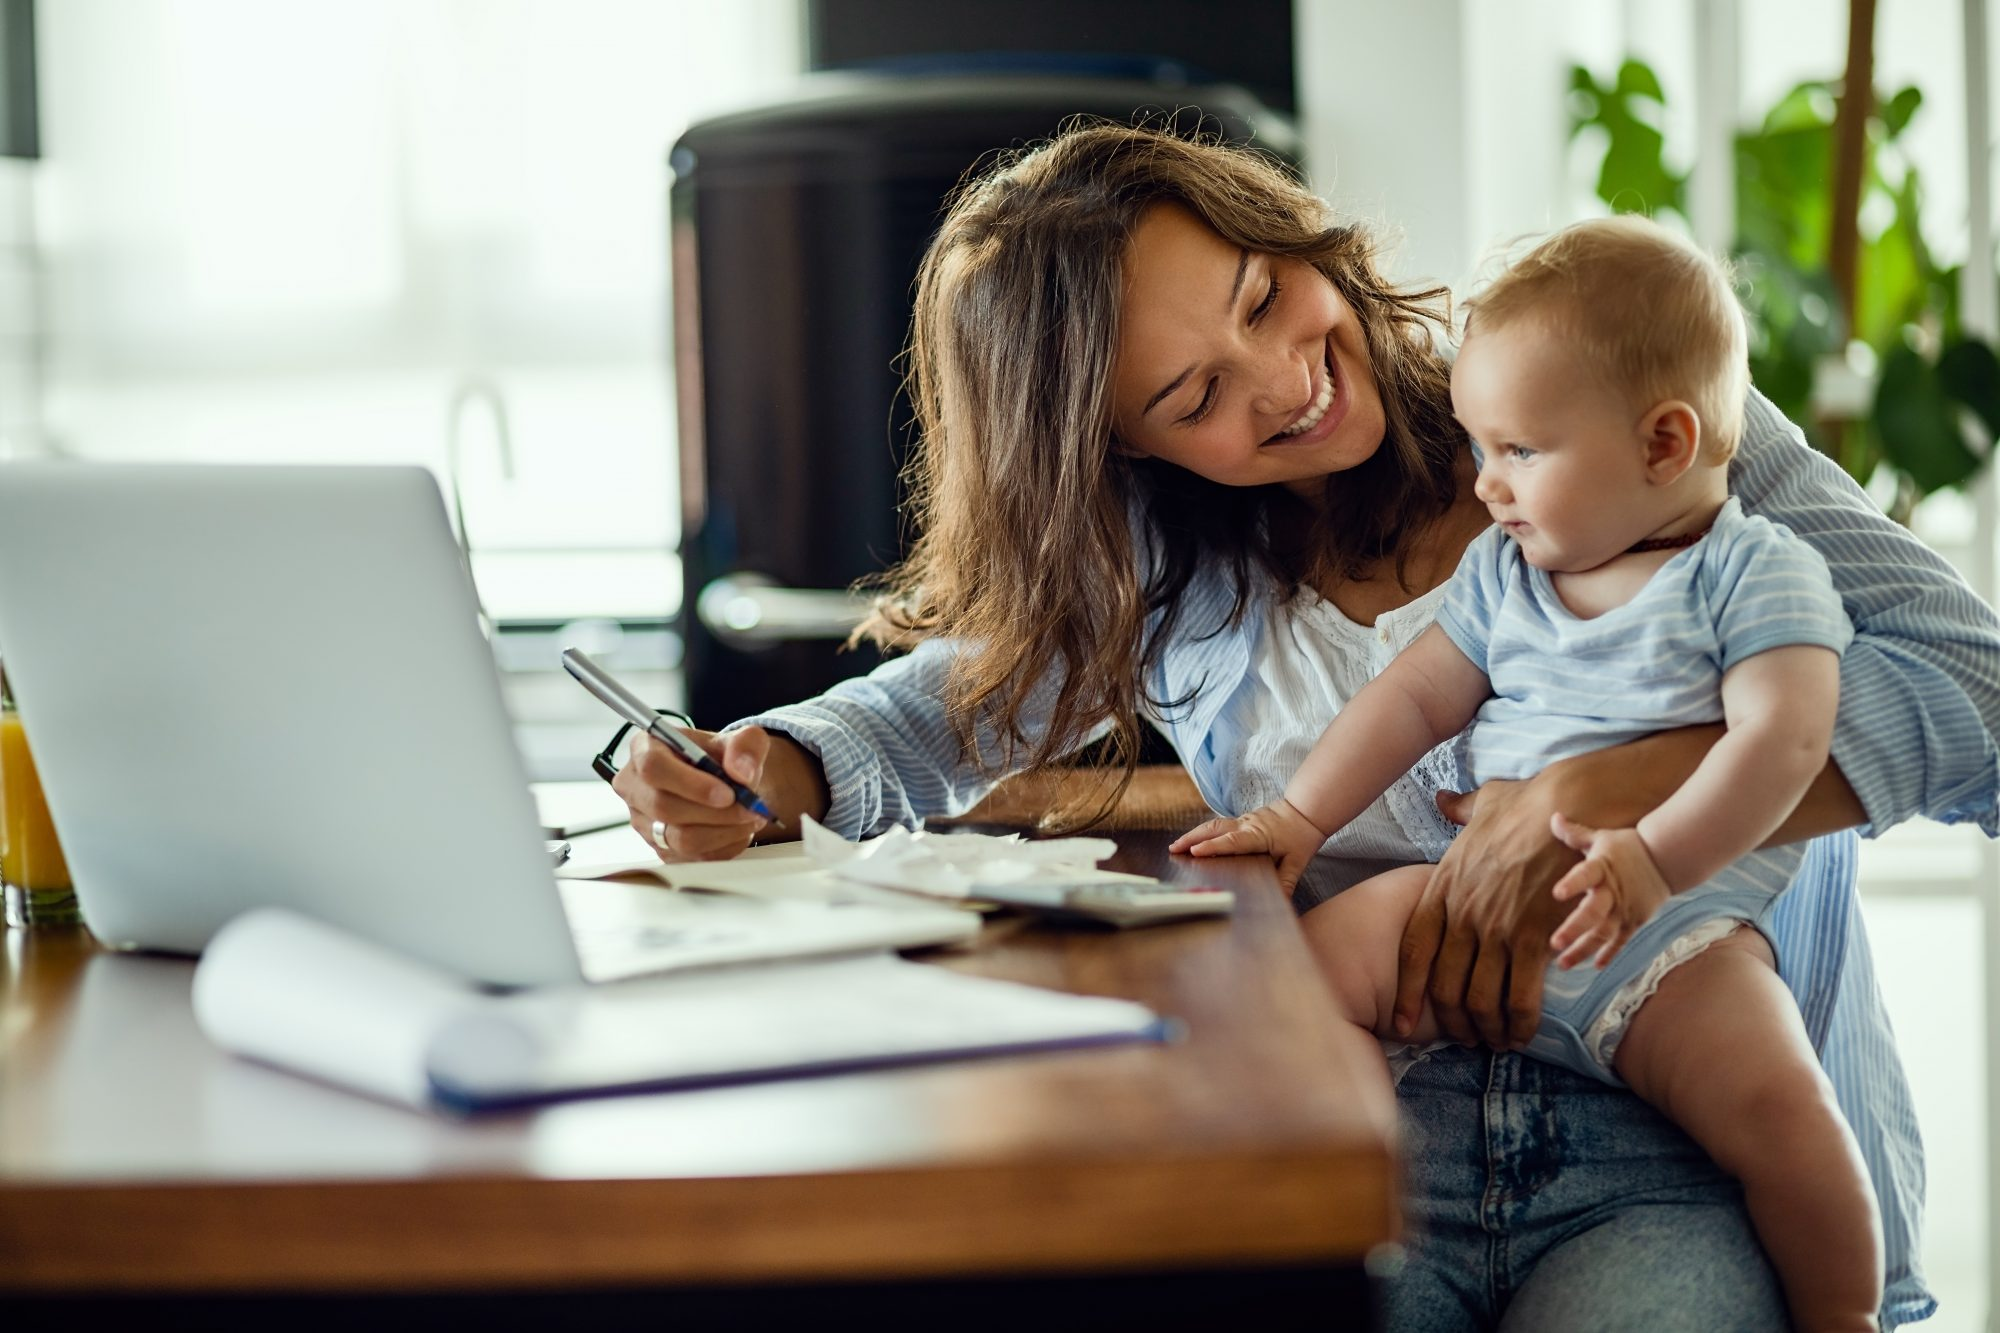 woman calculating finances at table with baby on lap